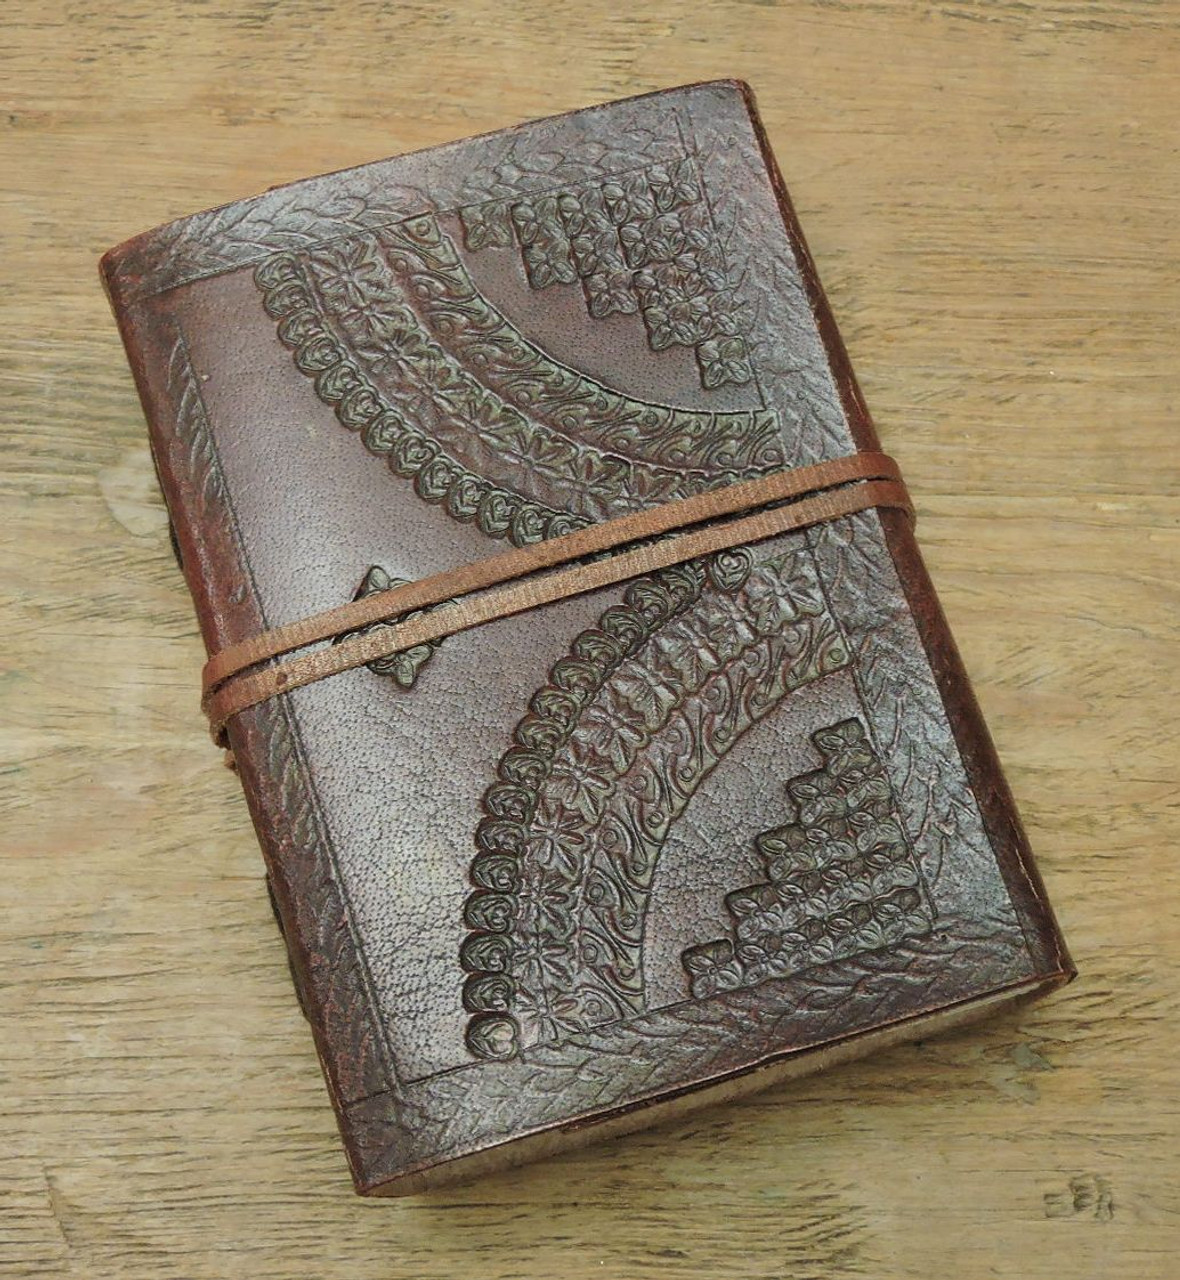 xtra small hand made leather journal